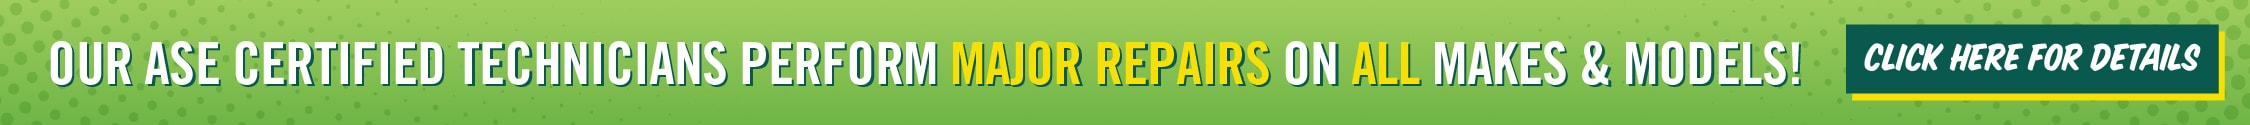 Learn about the service repairs and maintenance we offer at Larry H. Miller Used Car Supermarket Boise